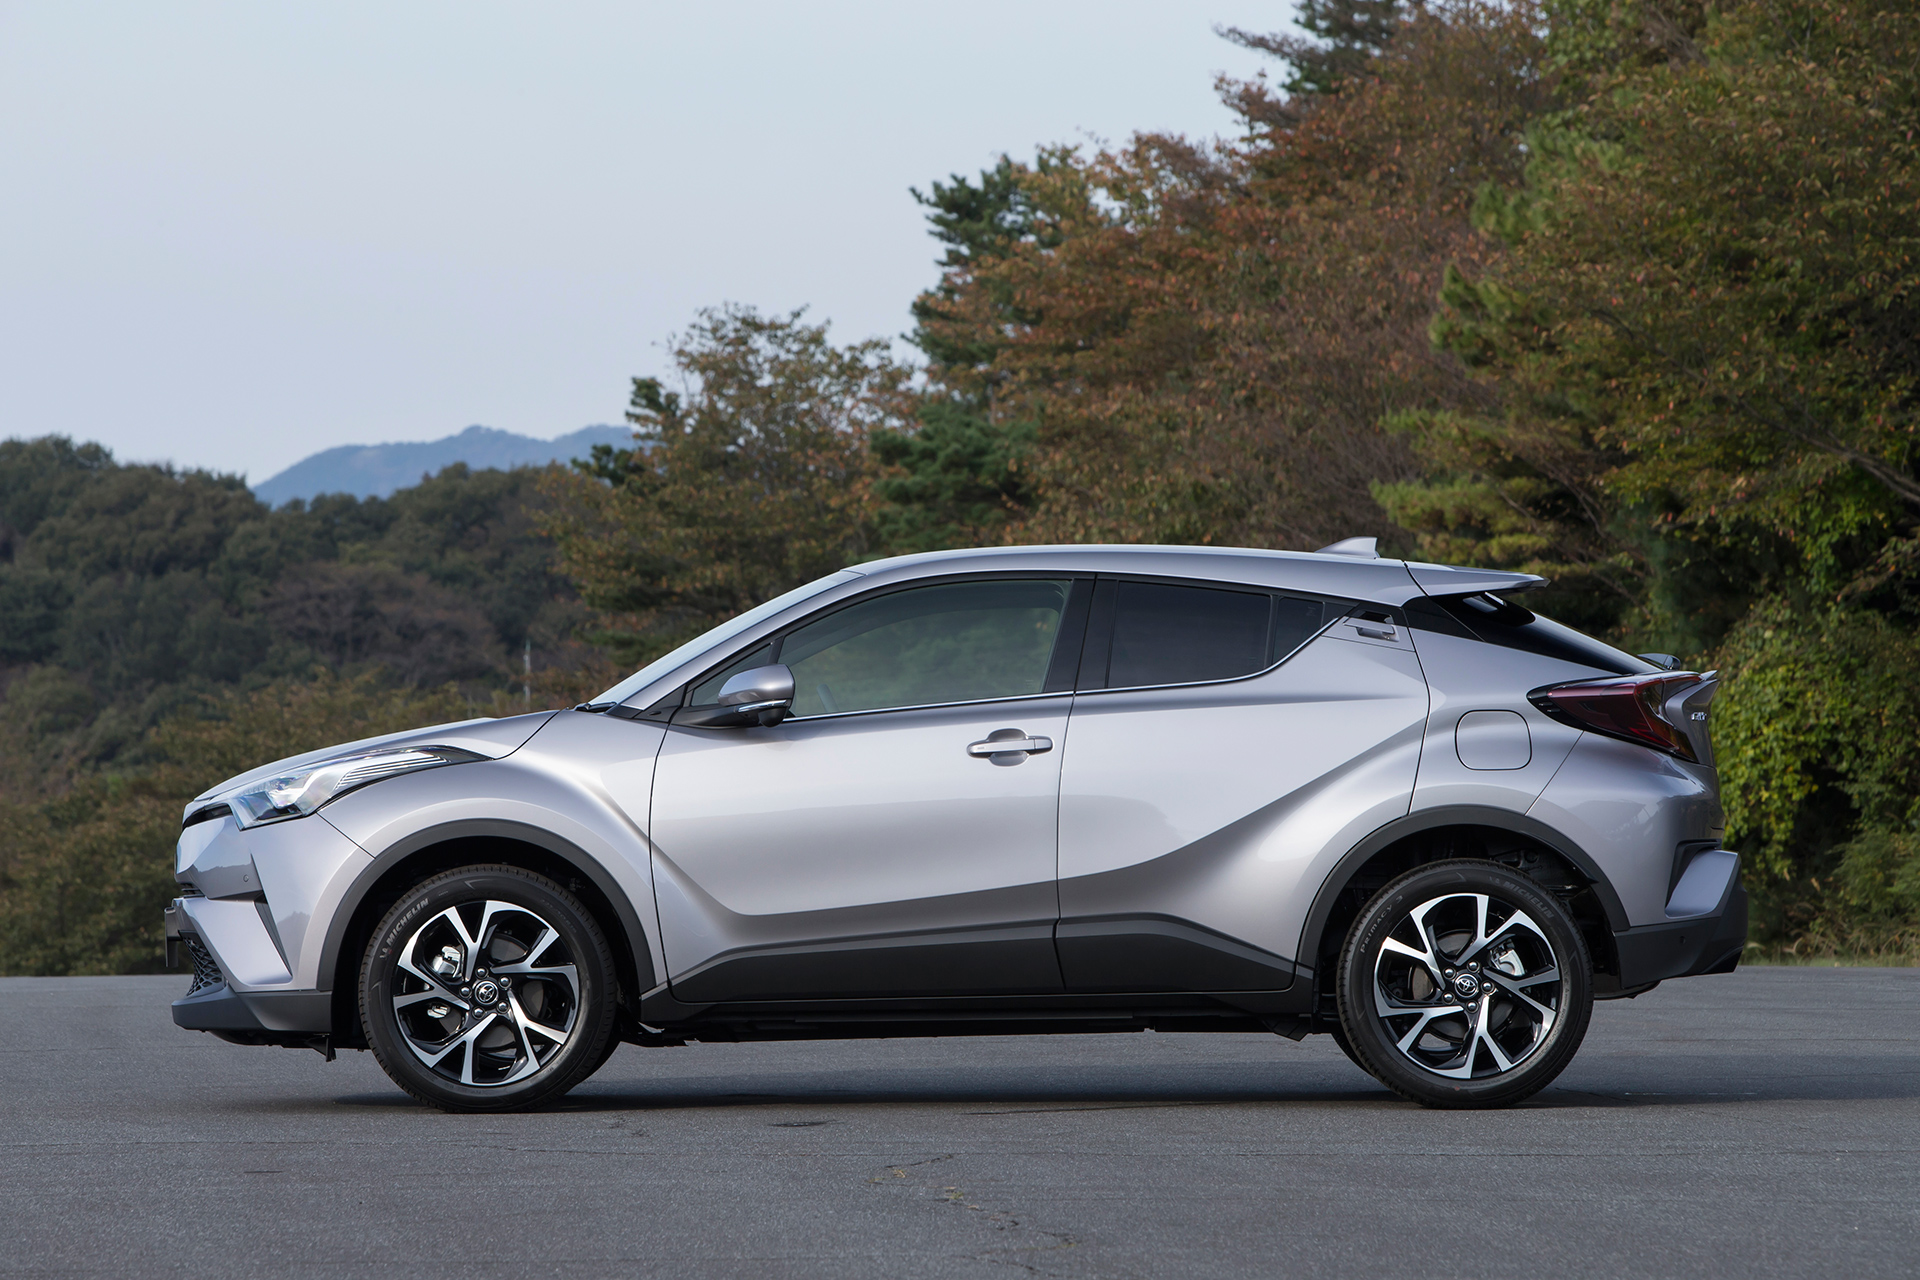 Toyota CHR compact crossover launched in Japan – 1.2L Turbo 4WD, 1